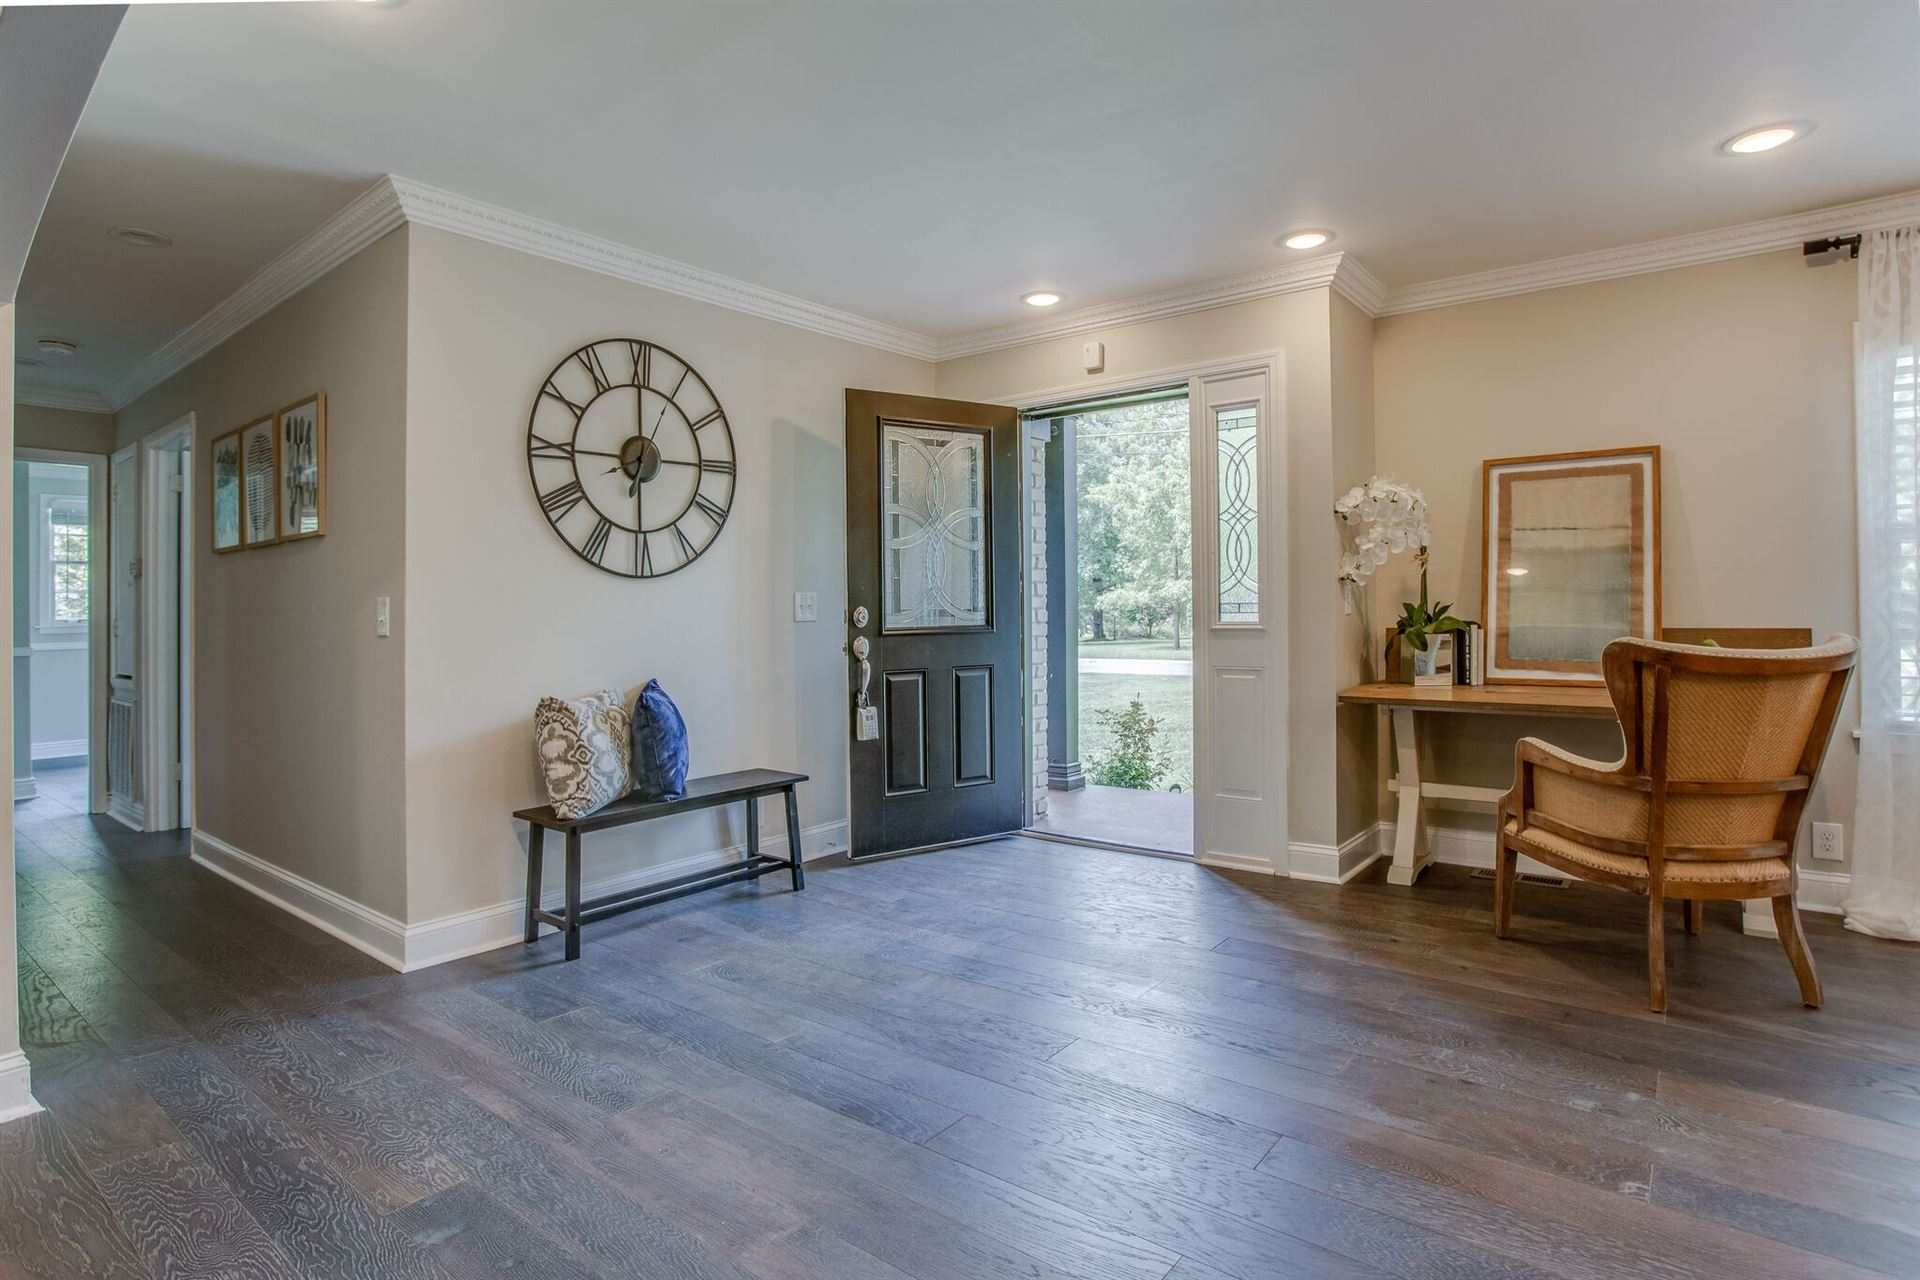 houses for sale under 150k near me